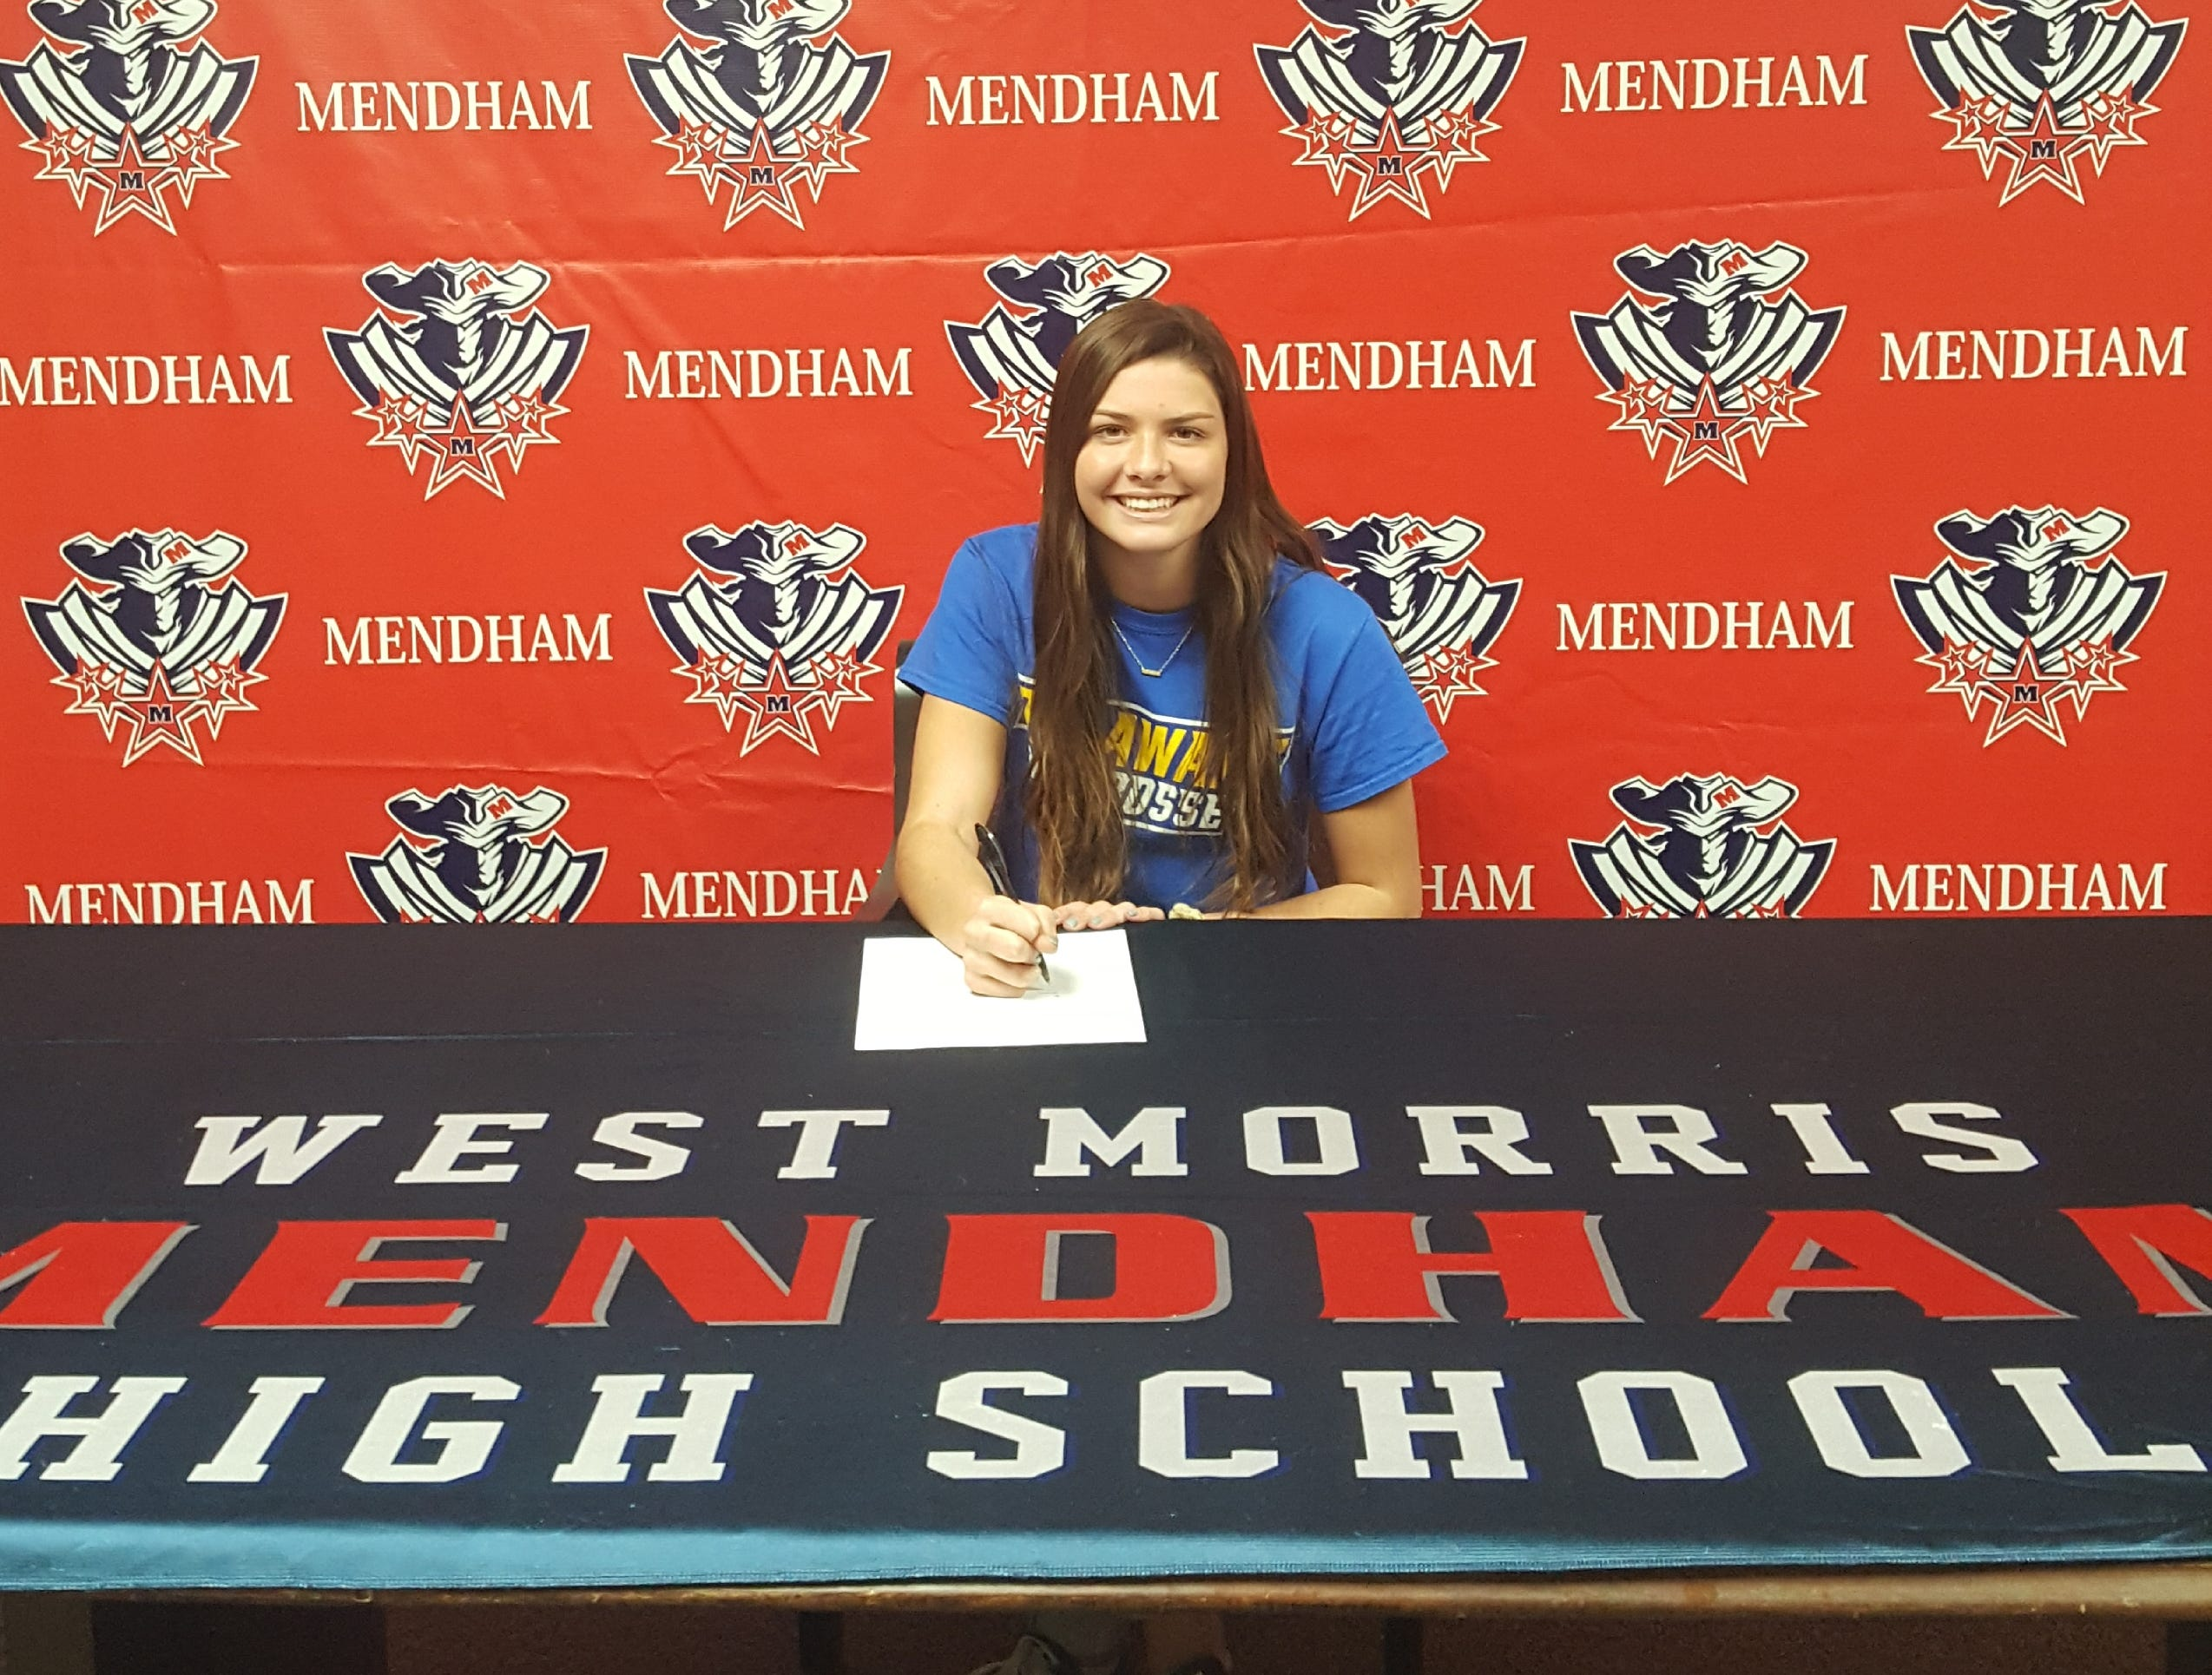 Mendham senior Madison Hranicka has signed a National Letter of Intent with Delaware women's lacrosse.